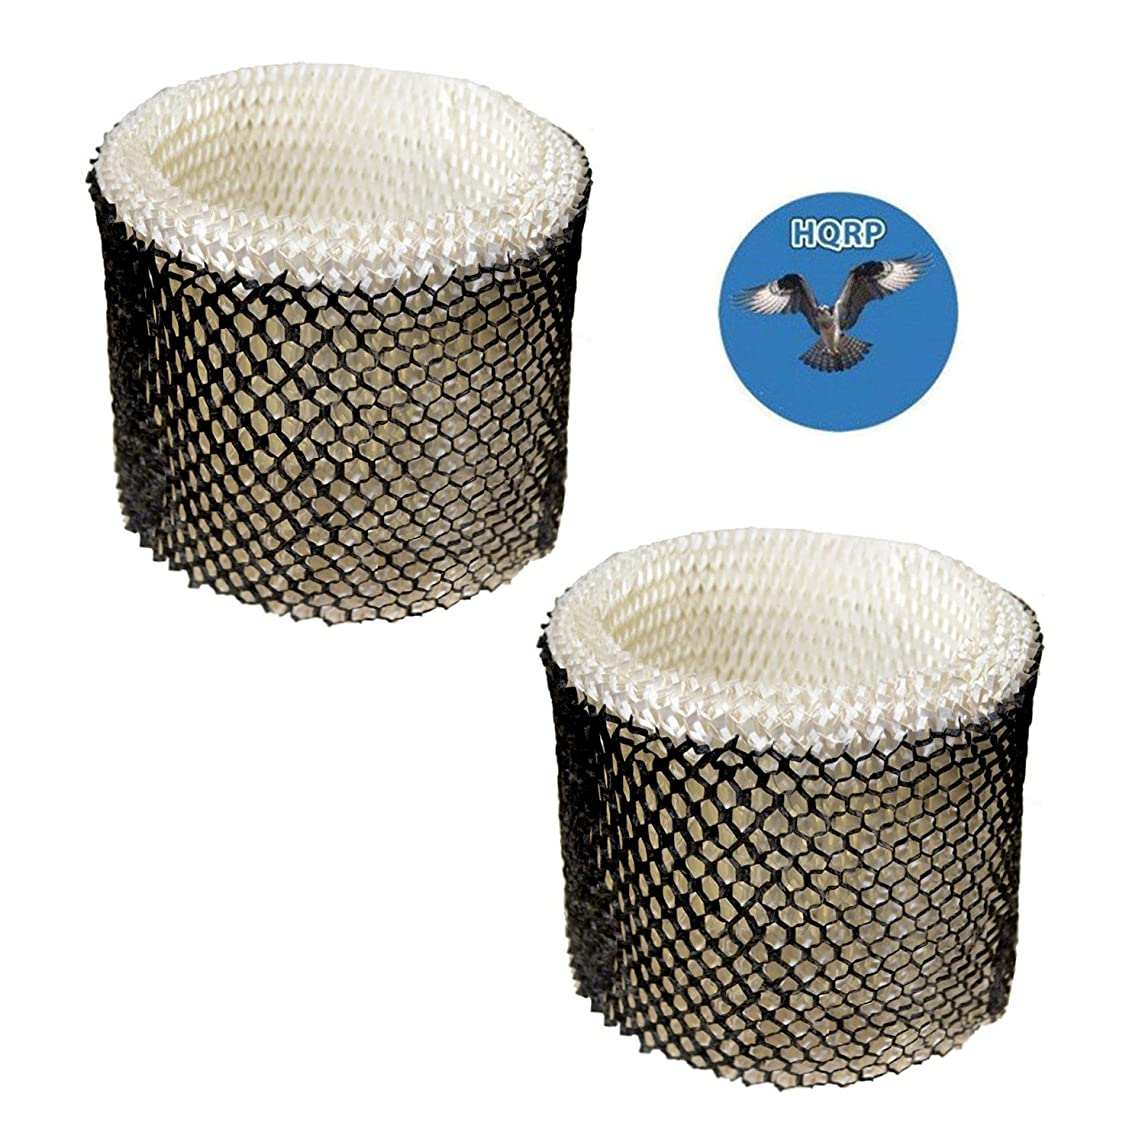 HQRP 2-Pack Wick Filter for Duracraft D88 DH888 DH890 DH890C DCM200 HCM890 DCM891B DCM891S Humidifier, AC-888 HC-888 Replacement Coaster